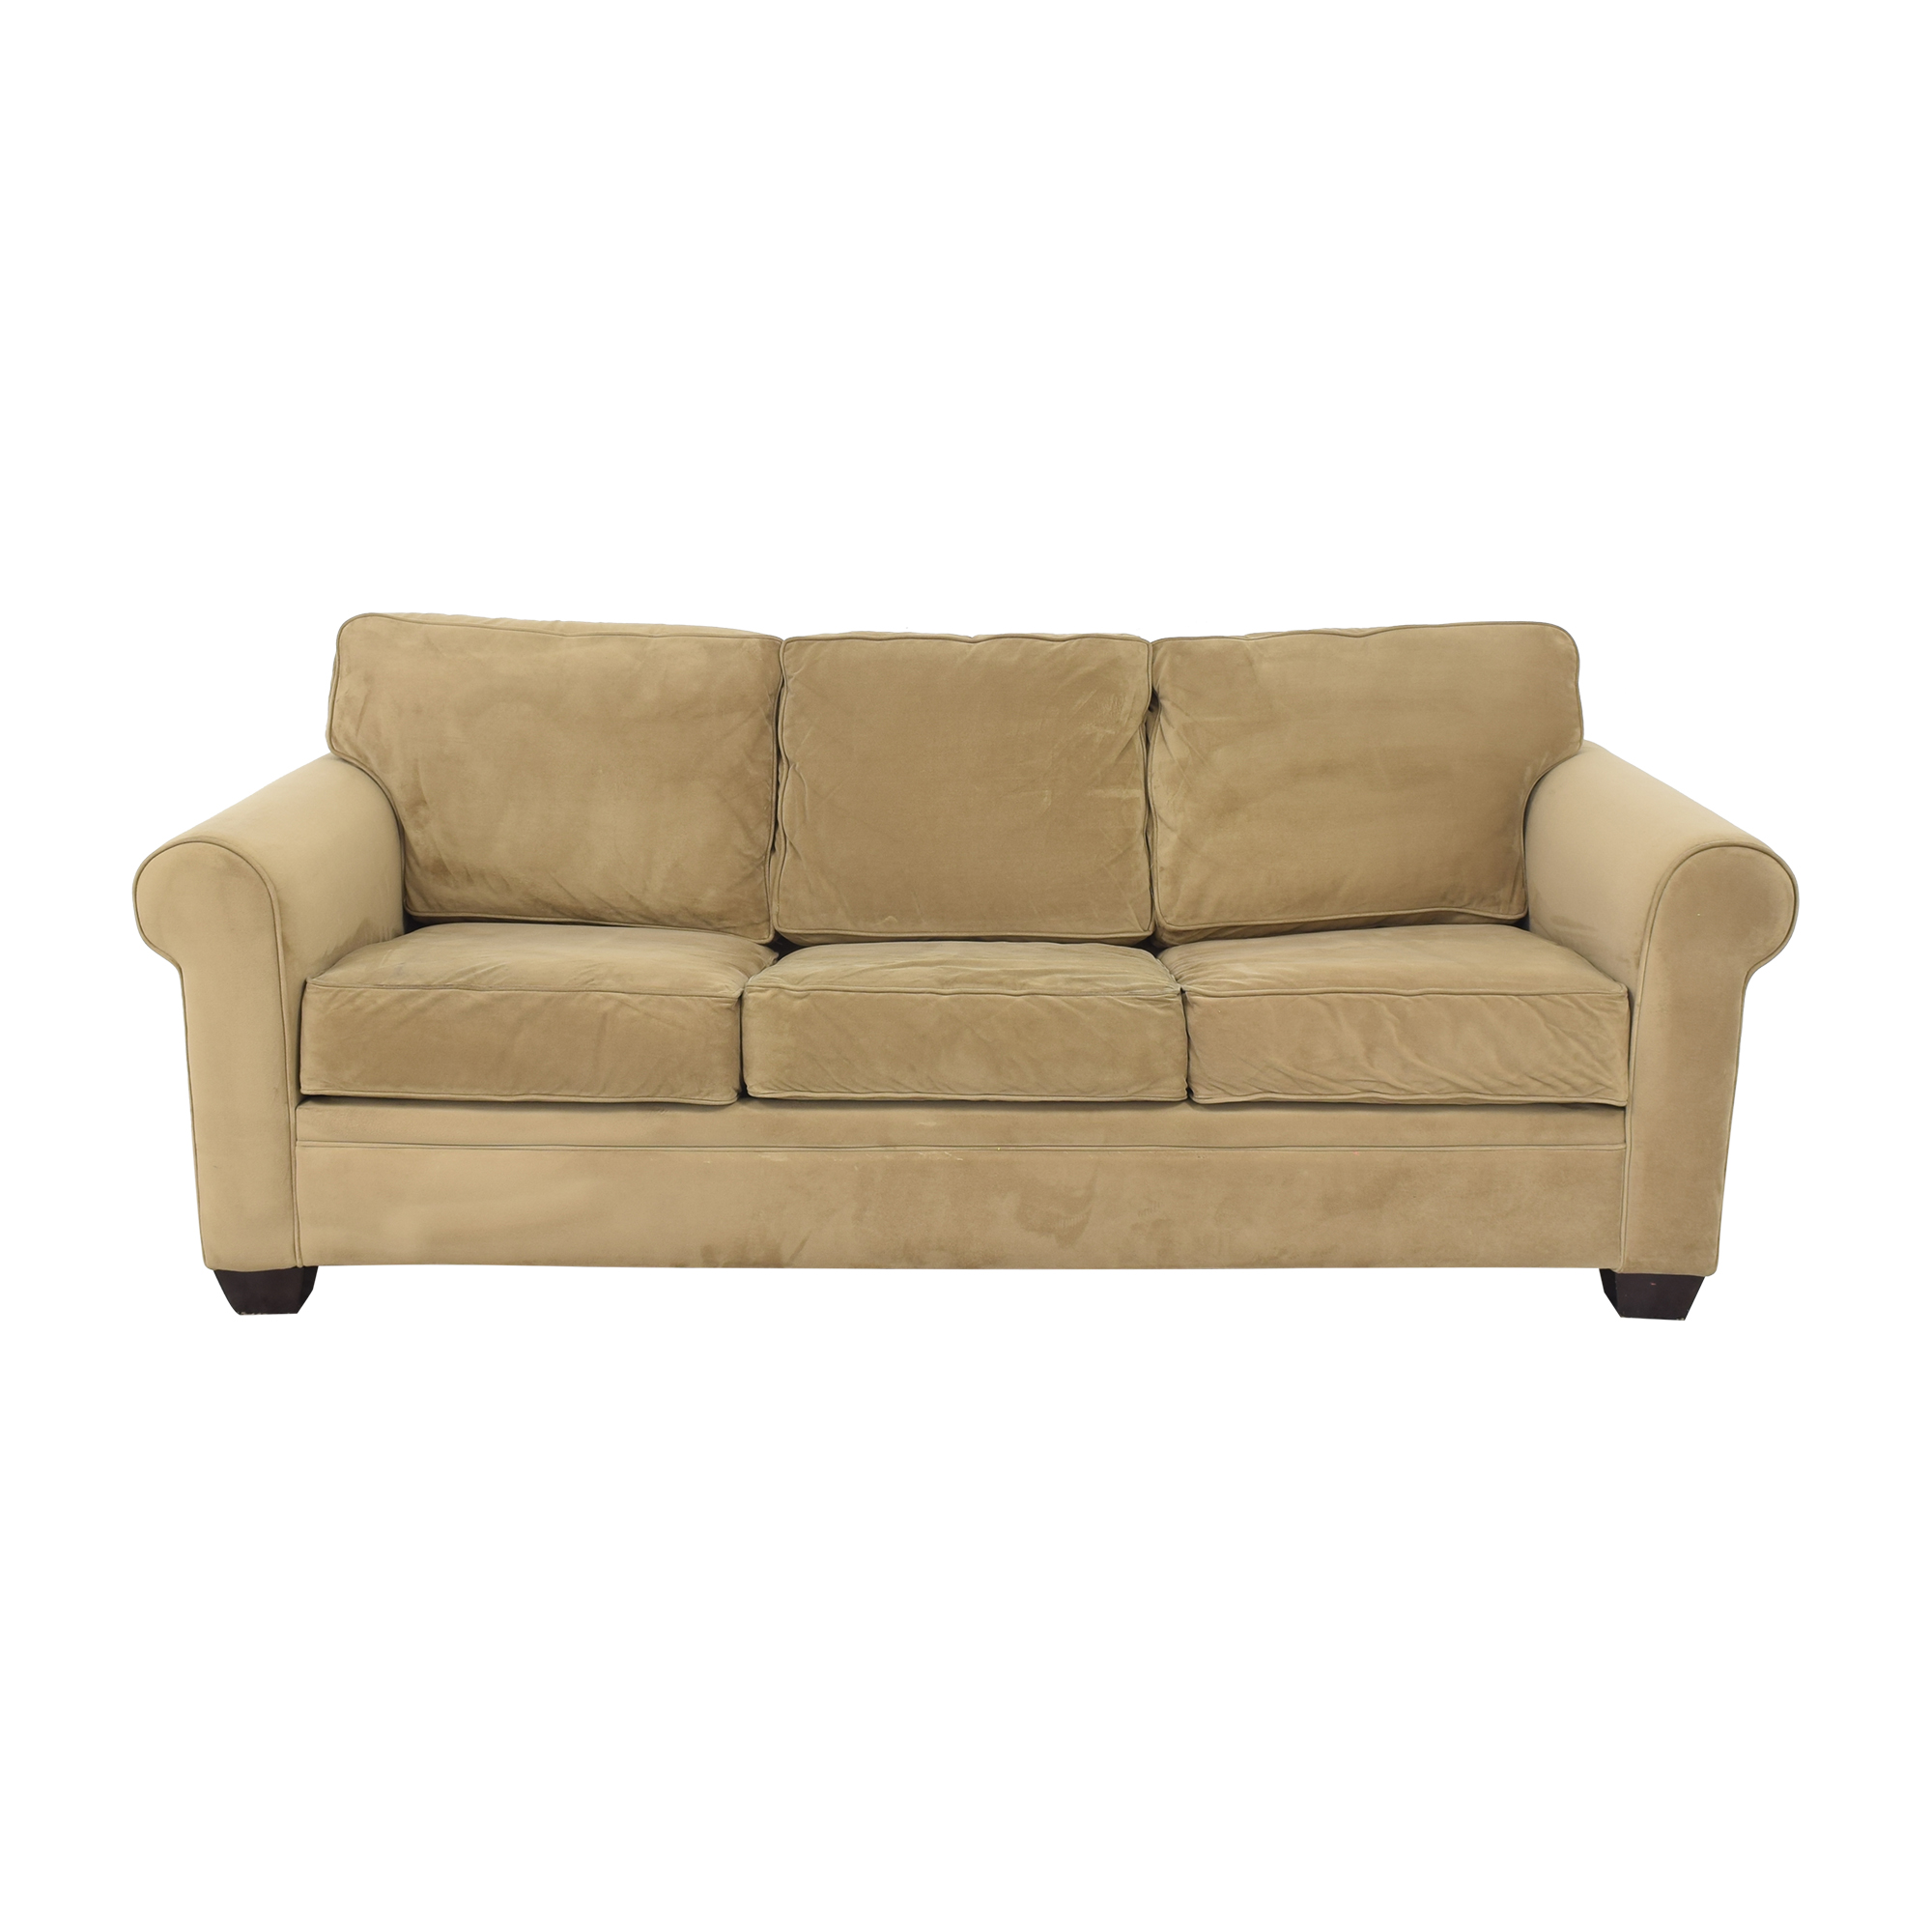 Macy's Macy's Tan Sofa Bed Sofa Beds